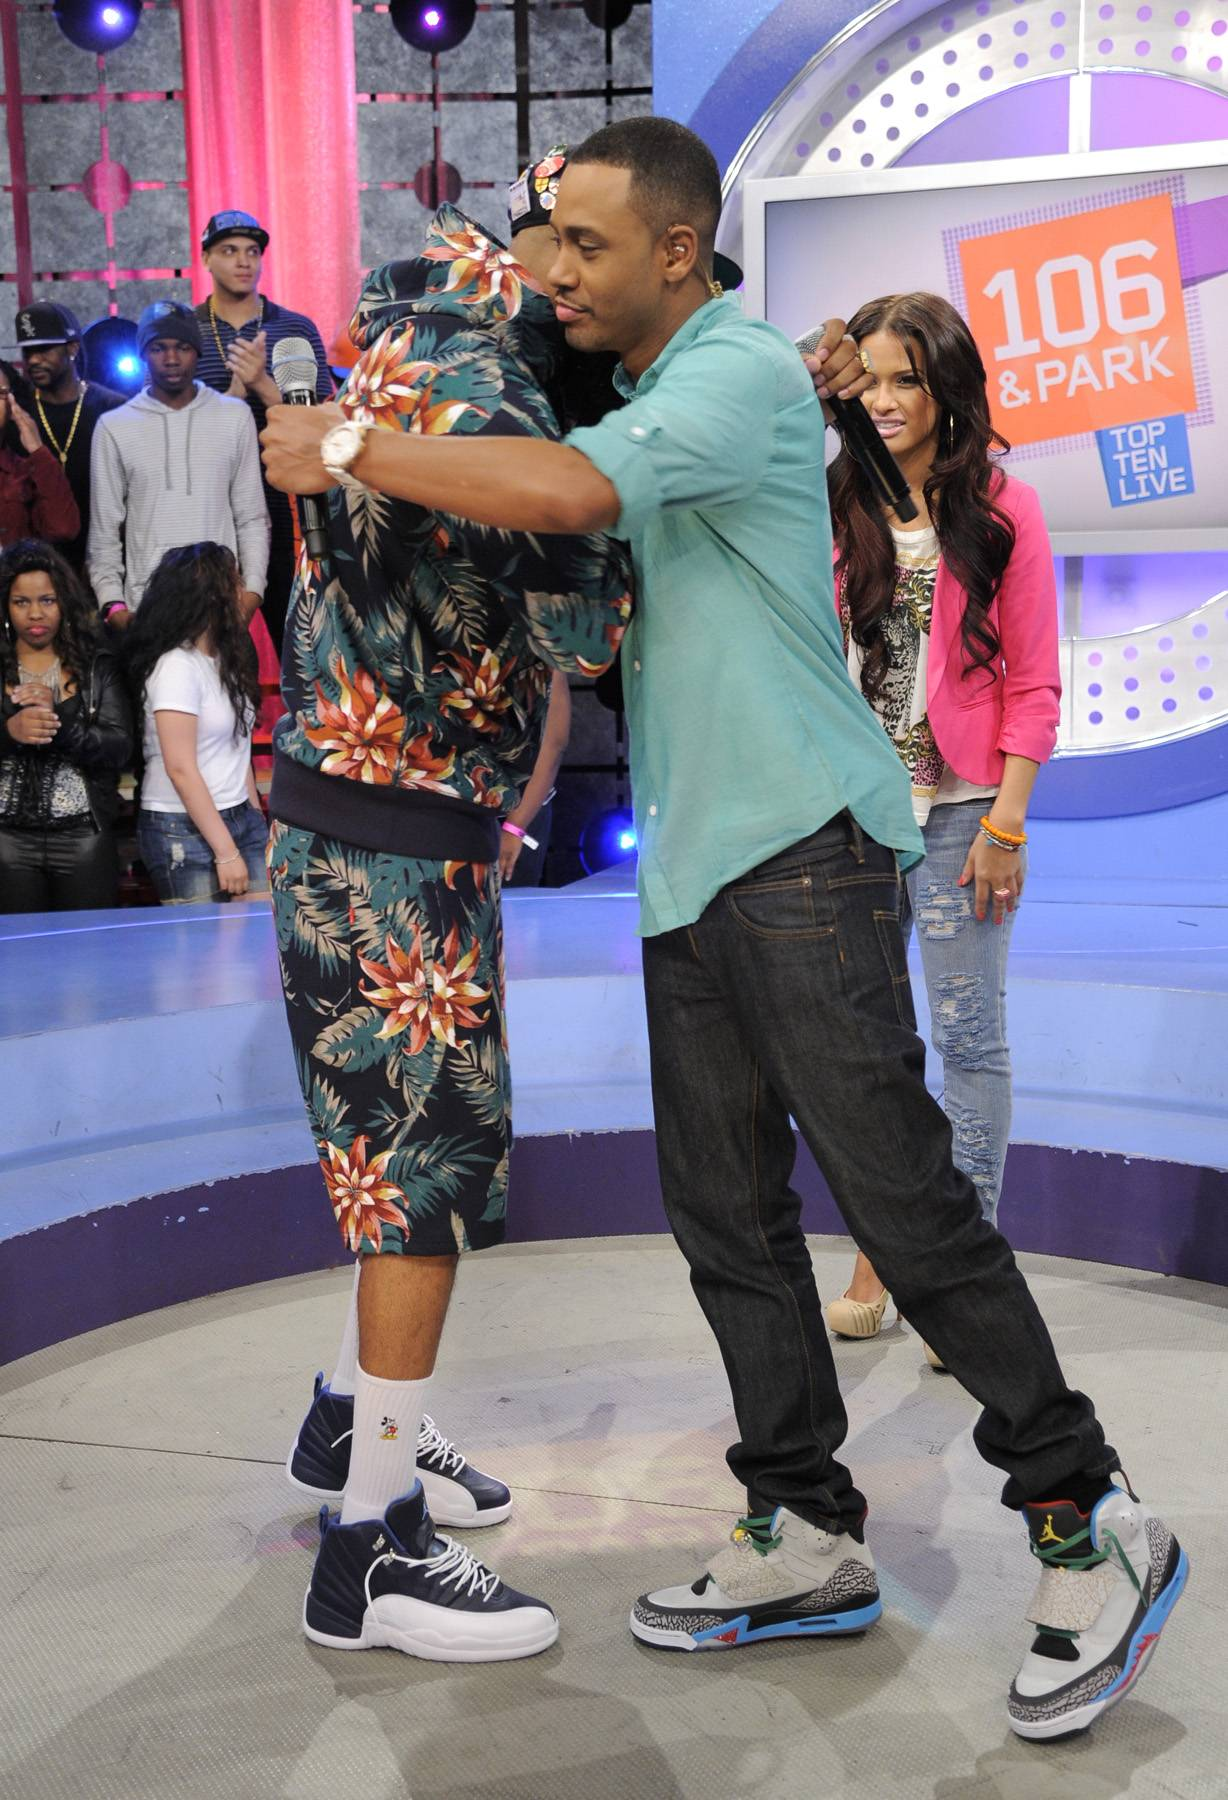 Show Some Love - Stalley of MMG with Rocsi Diaz and Terrence J at 106 & Park, April 17, 2012. (Photo: John Ricard/BET)